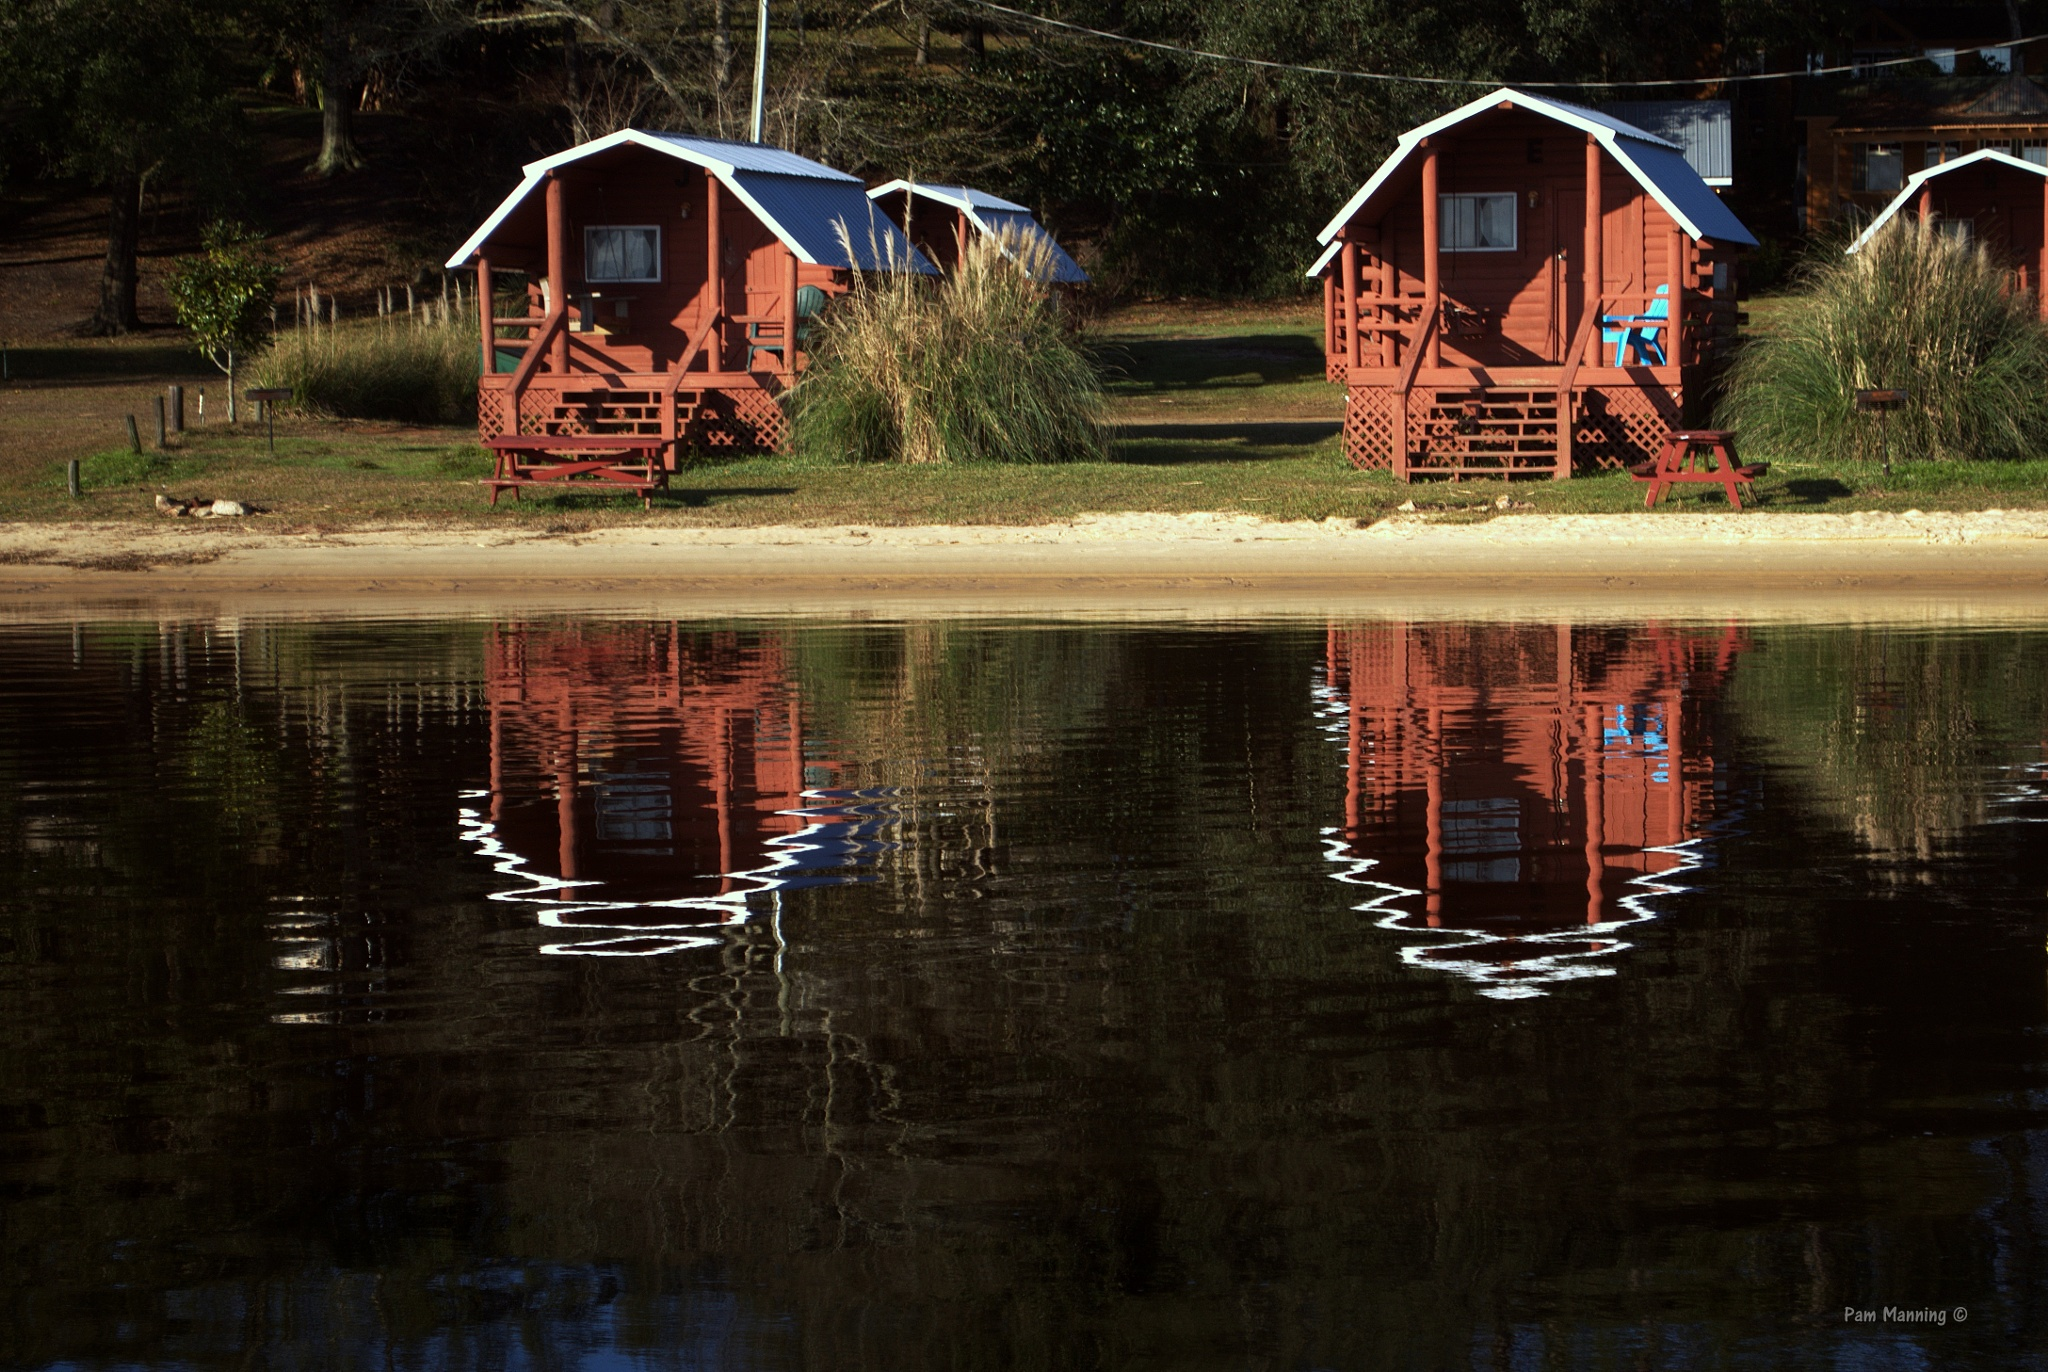 2 Cabins-2 Reflections by pam.satterfieldmanning